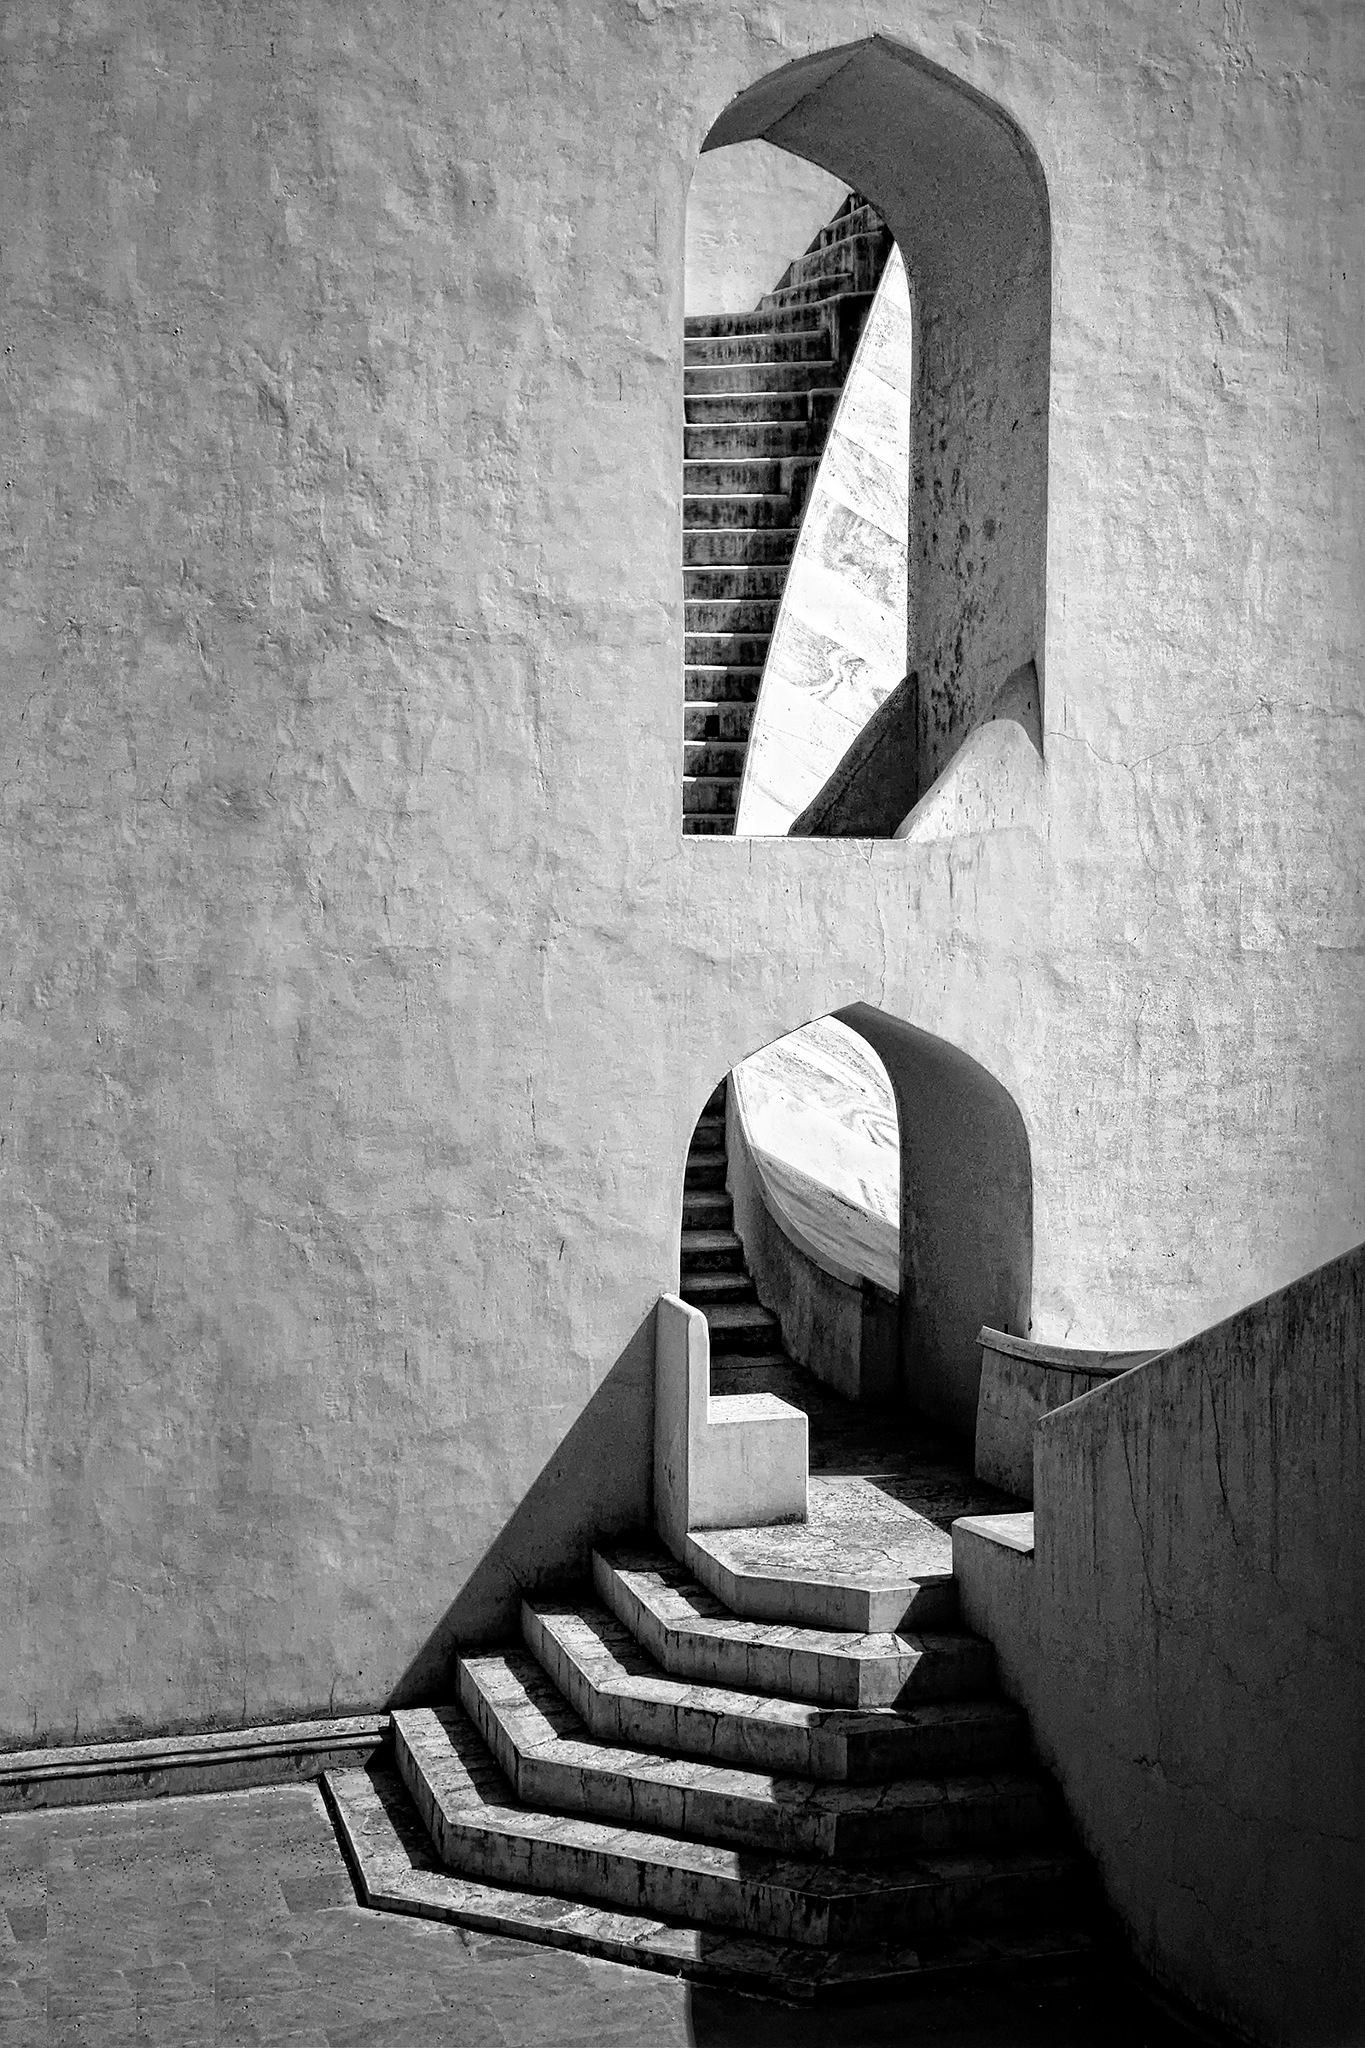 Stairway to Time by Roxanne Bouche' Overton